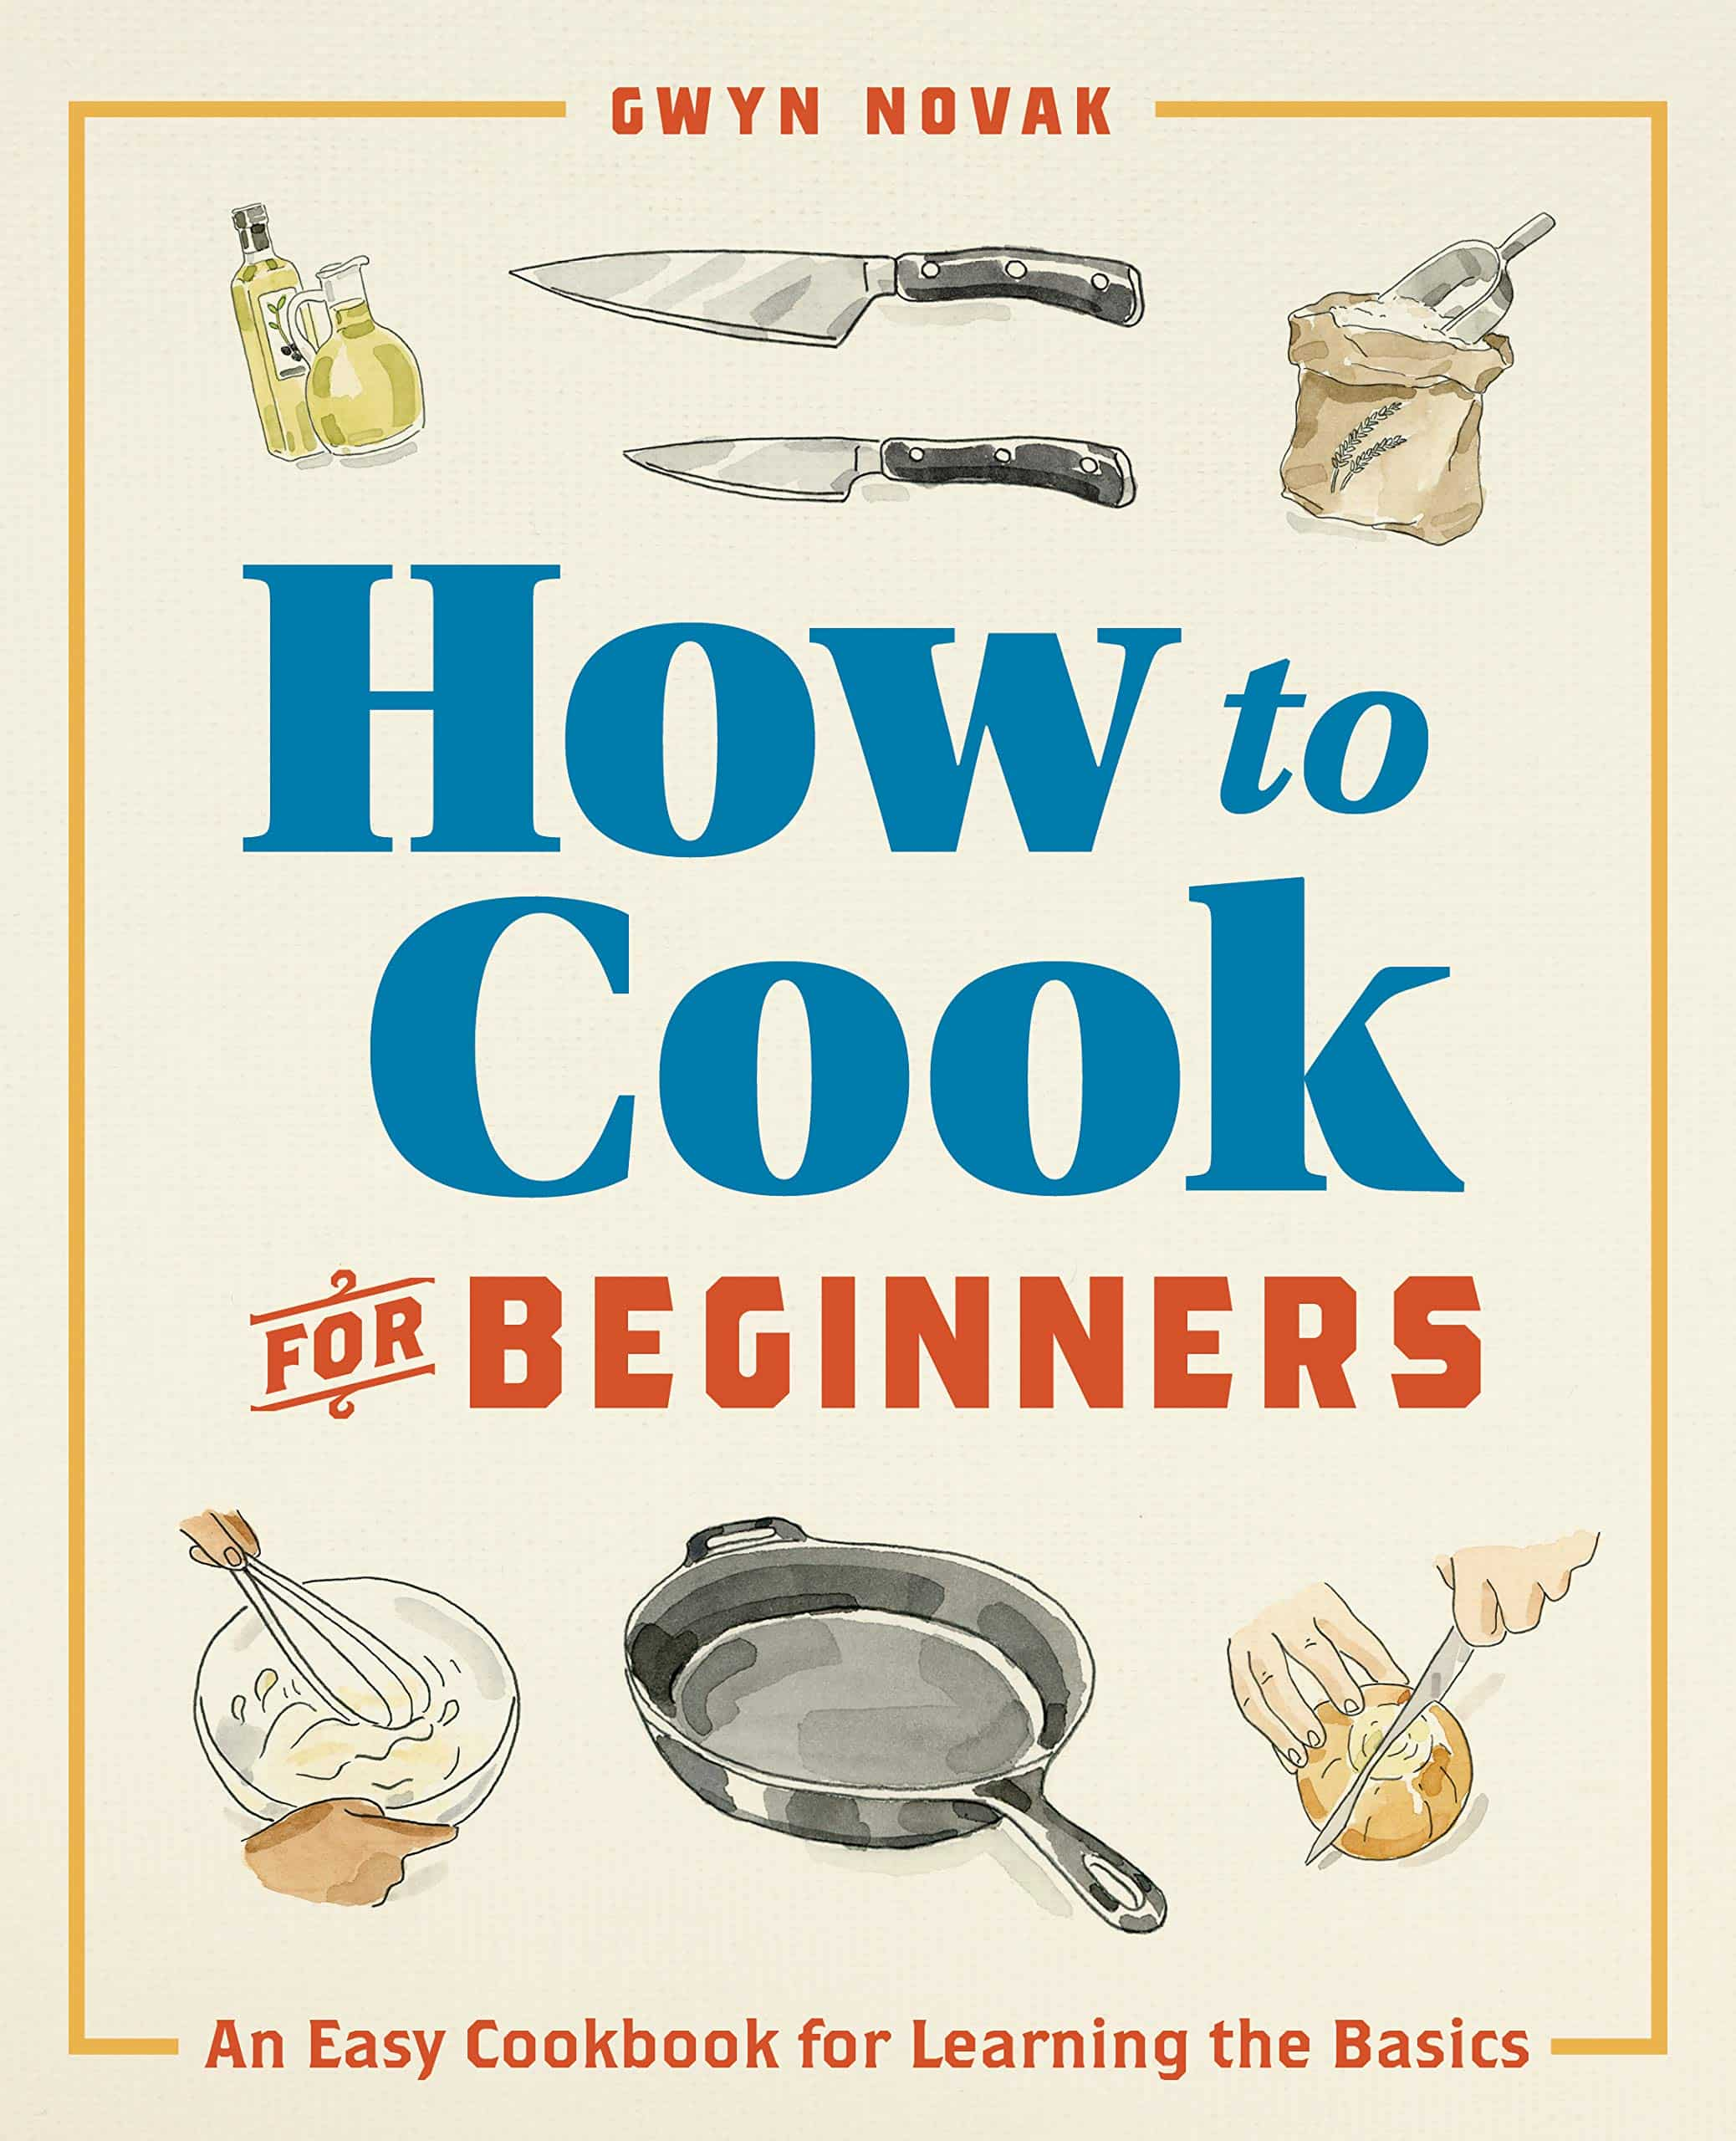 Cookbooks and Recipes: Lessons to Remember